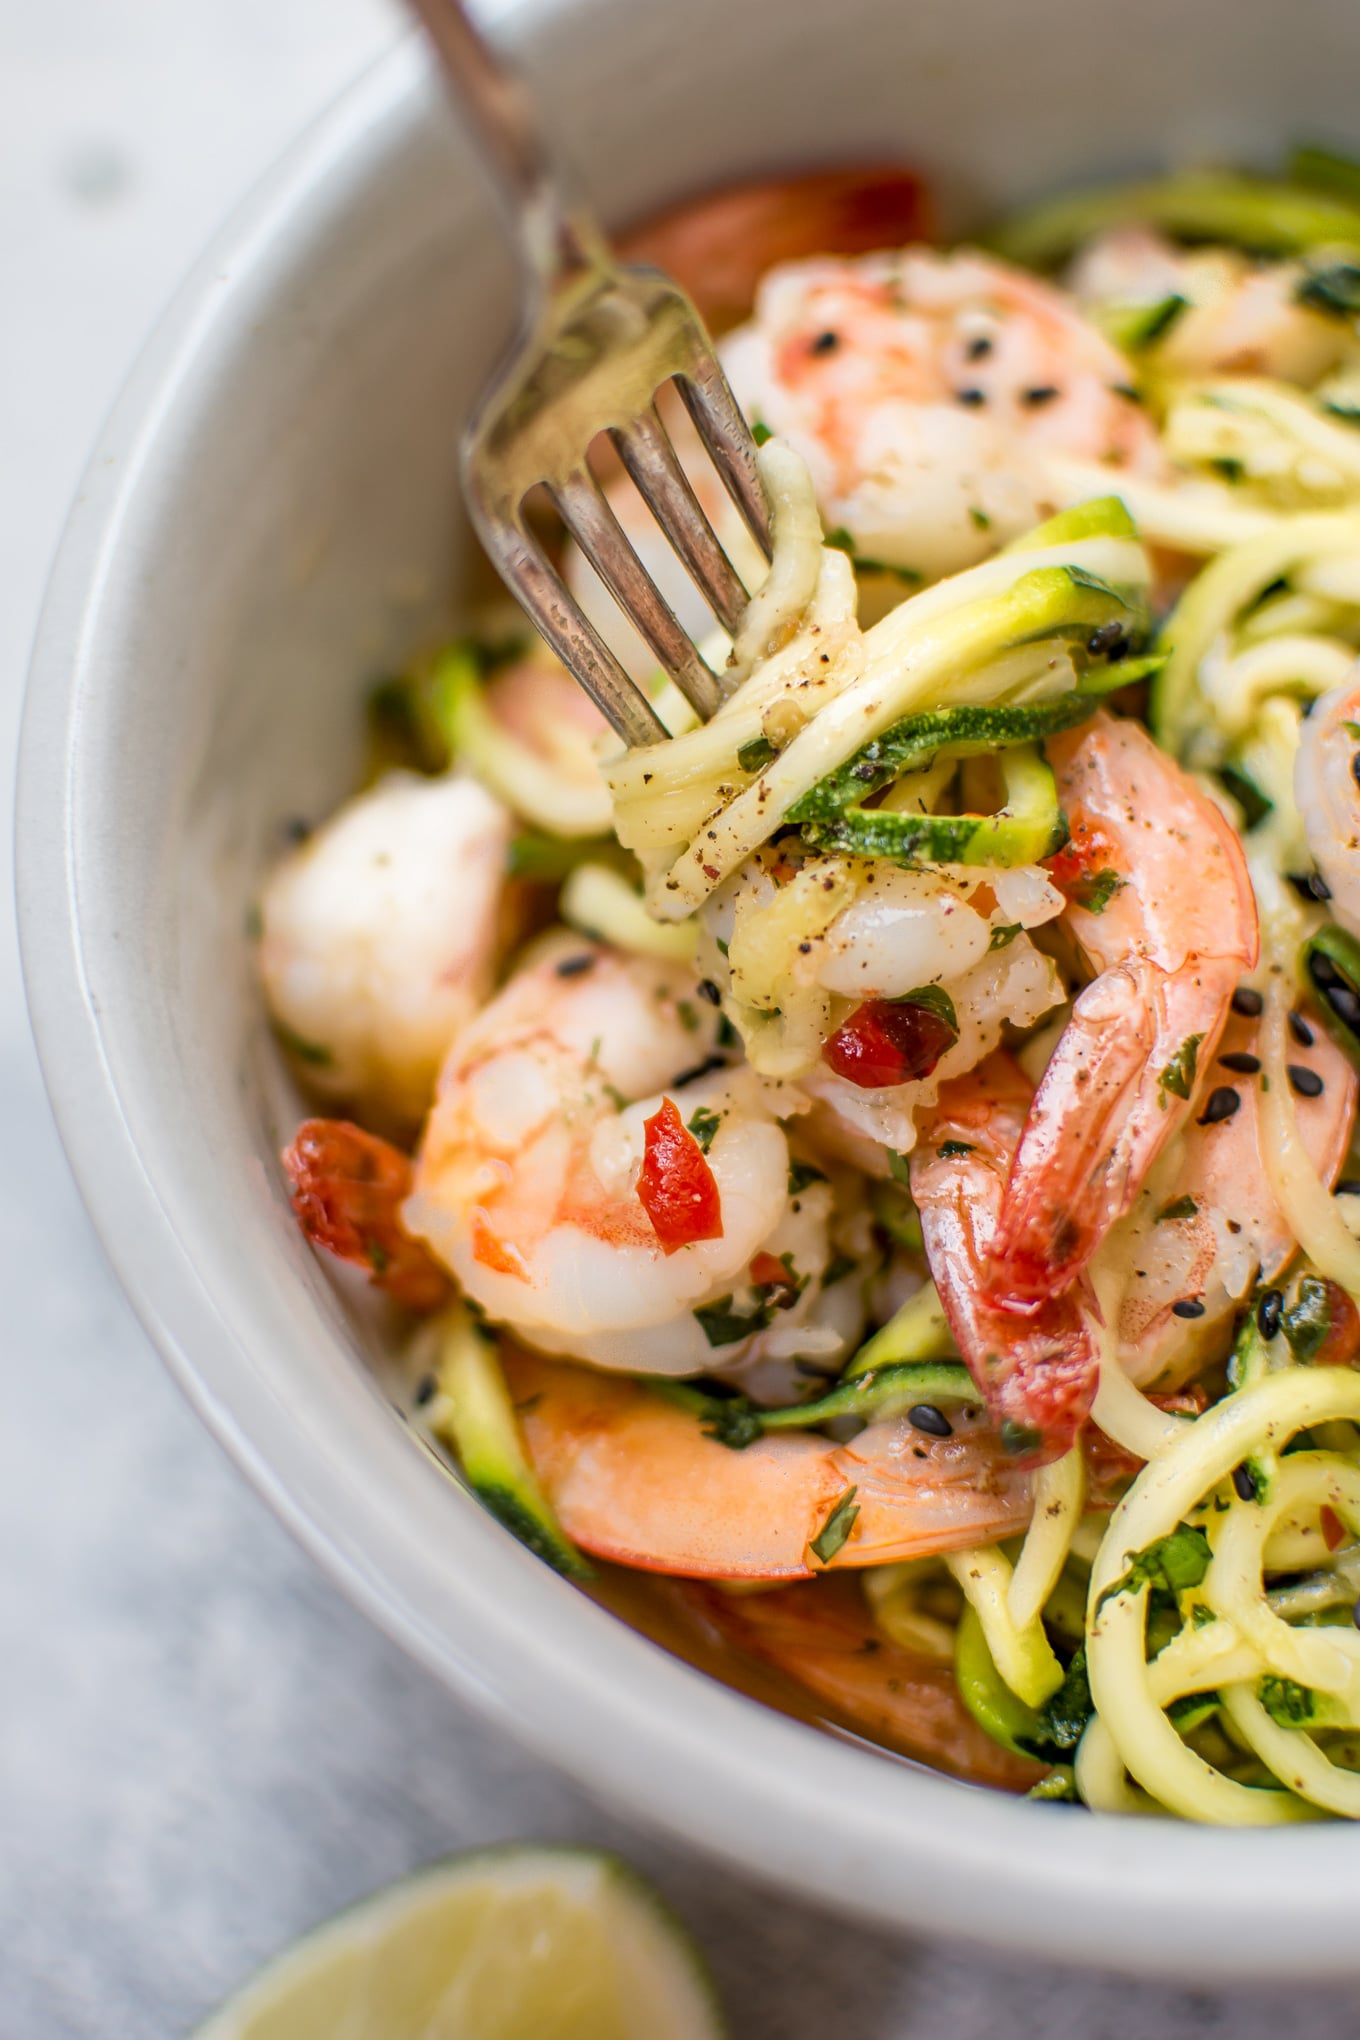 These sweet chili shrimp zoodles are a healthy, flavorful, and tasty low-carb meal that's ready in only 15 minutes!